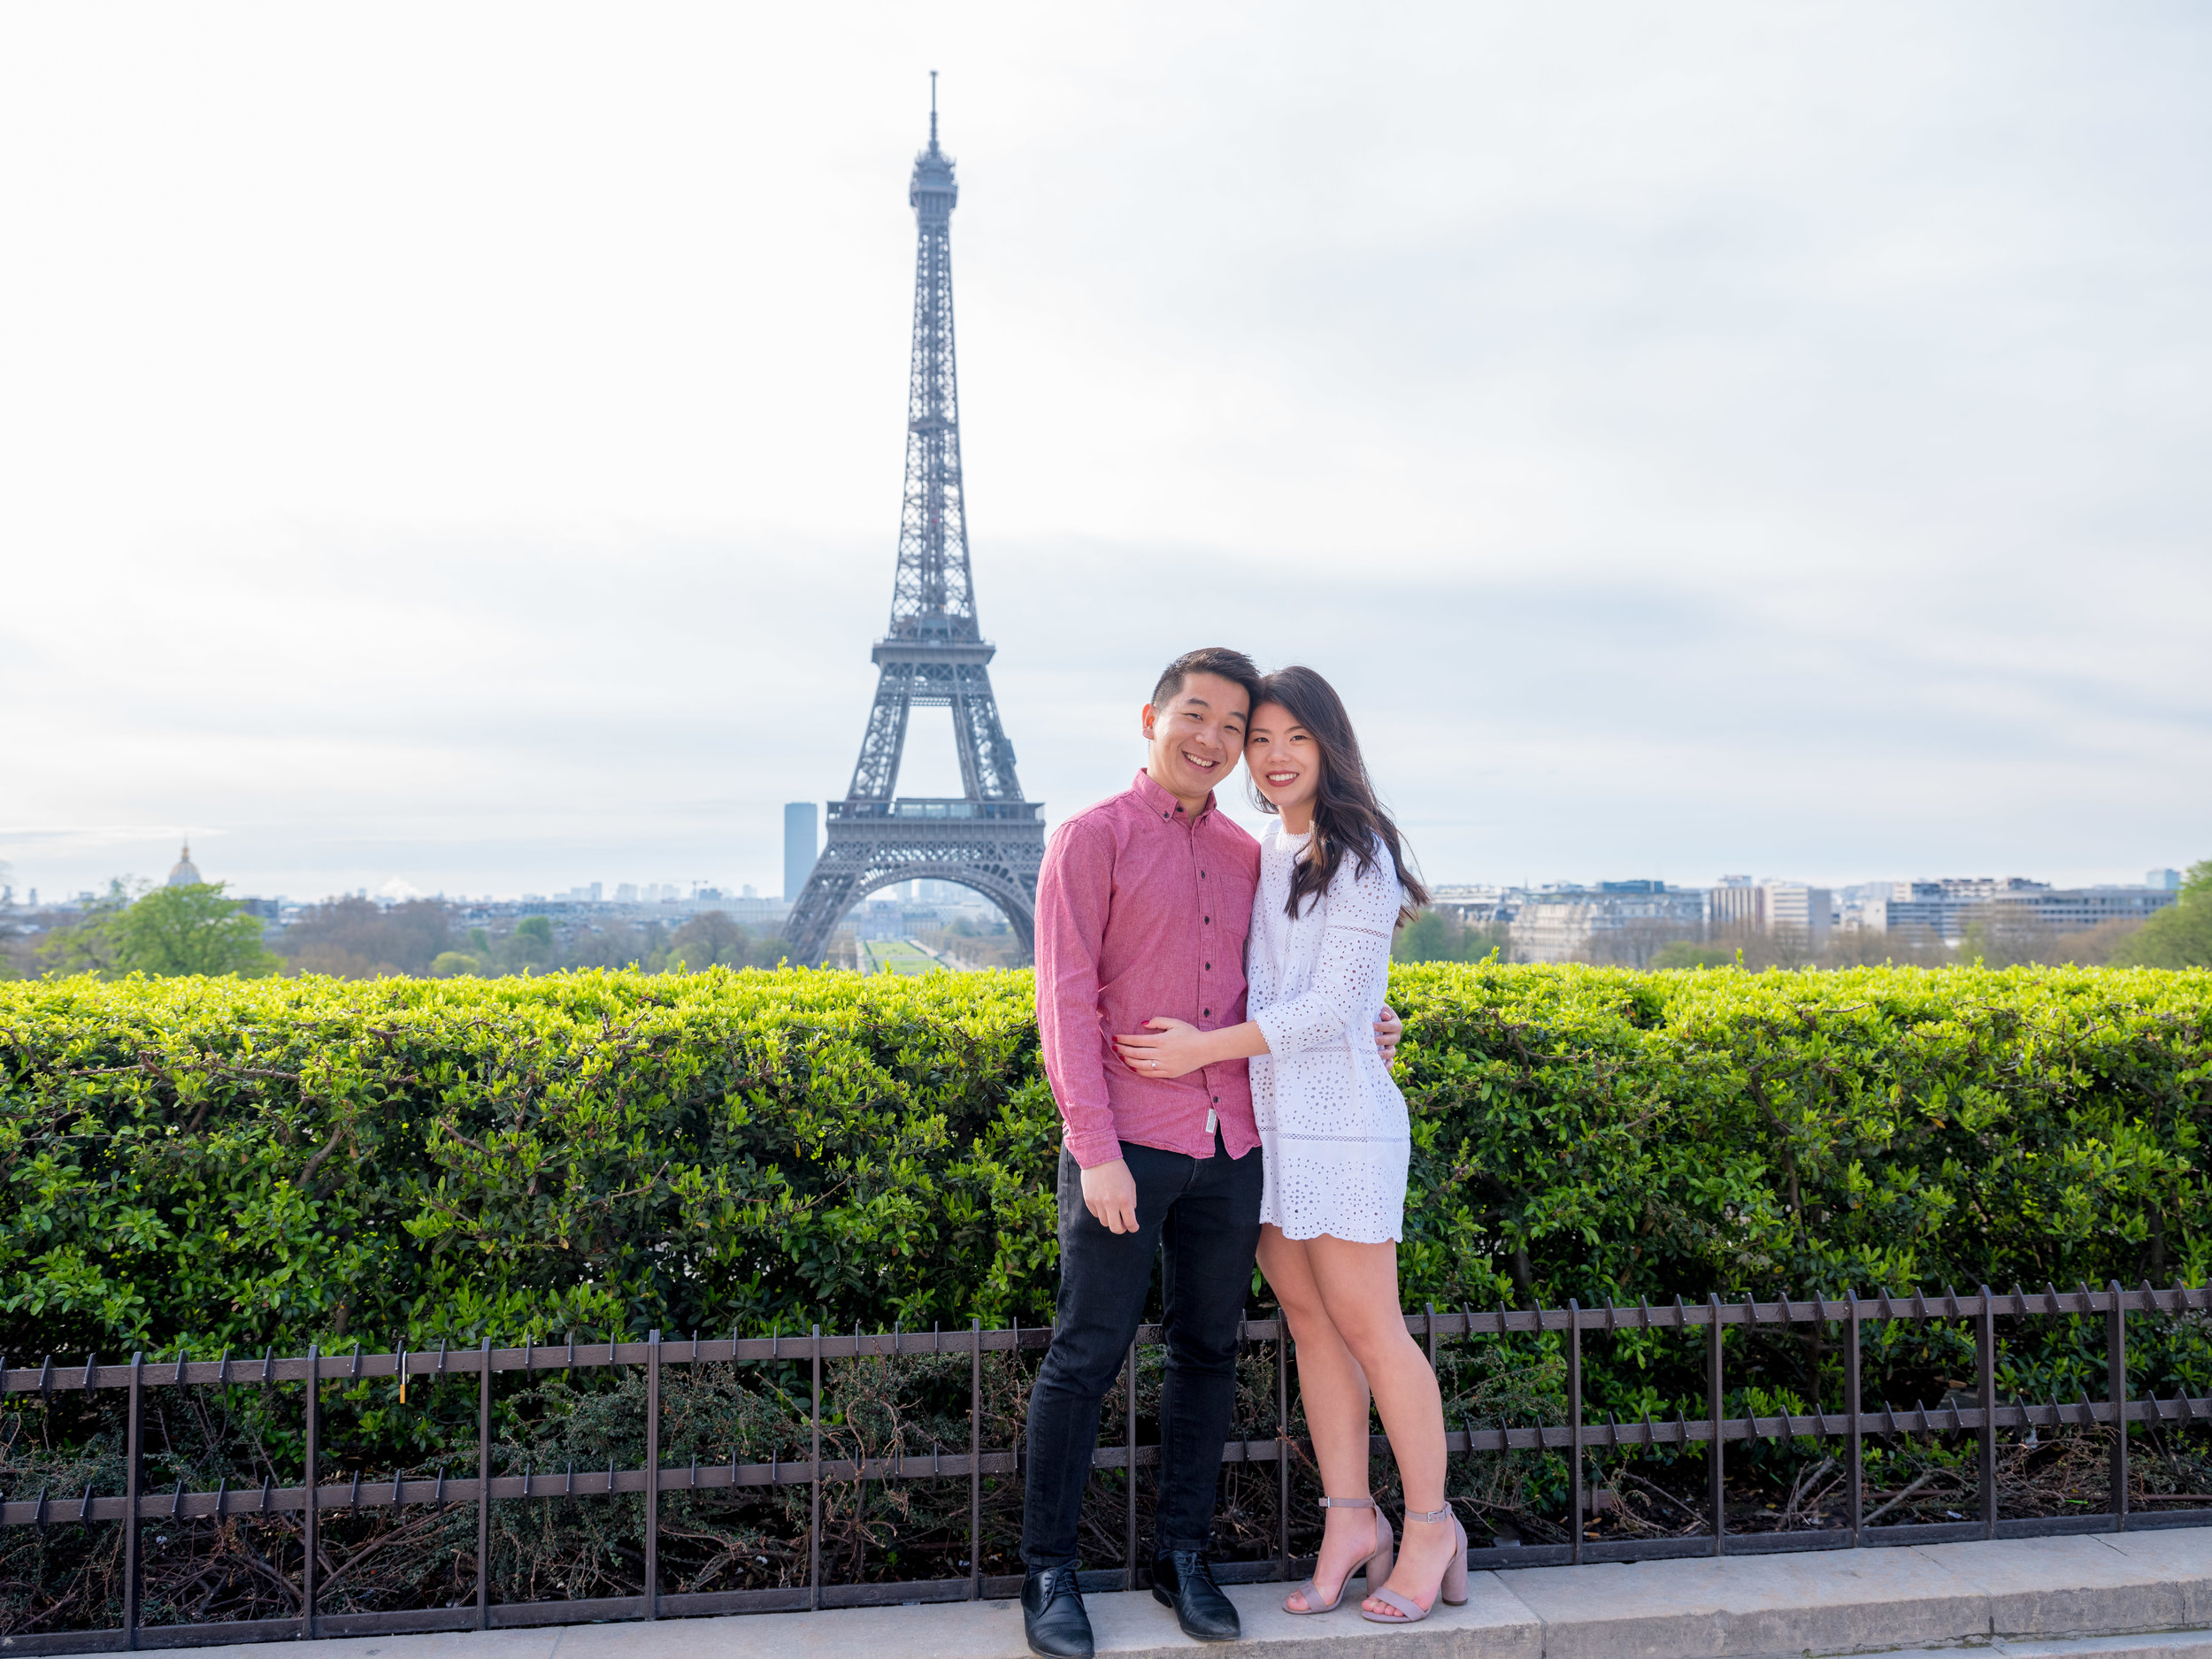 Lovely engagement photo shoot at the Eiffel Tower in Paris